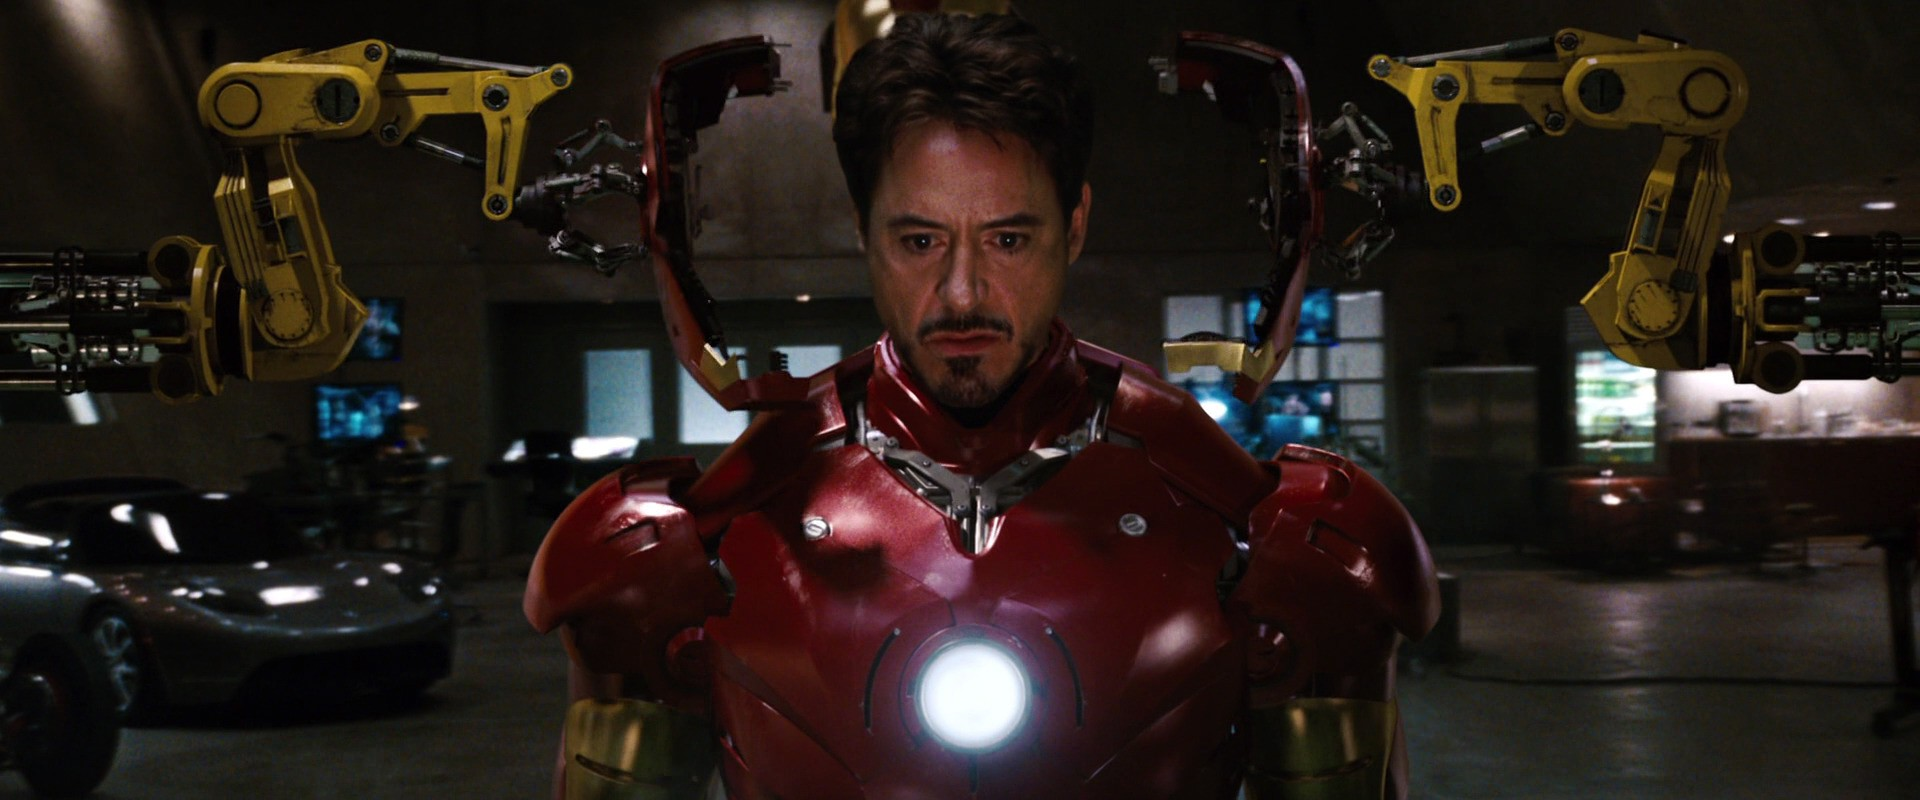 Image iron man1 movie marvel movies fandom powered by wikia - Iron man 1 images ...